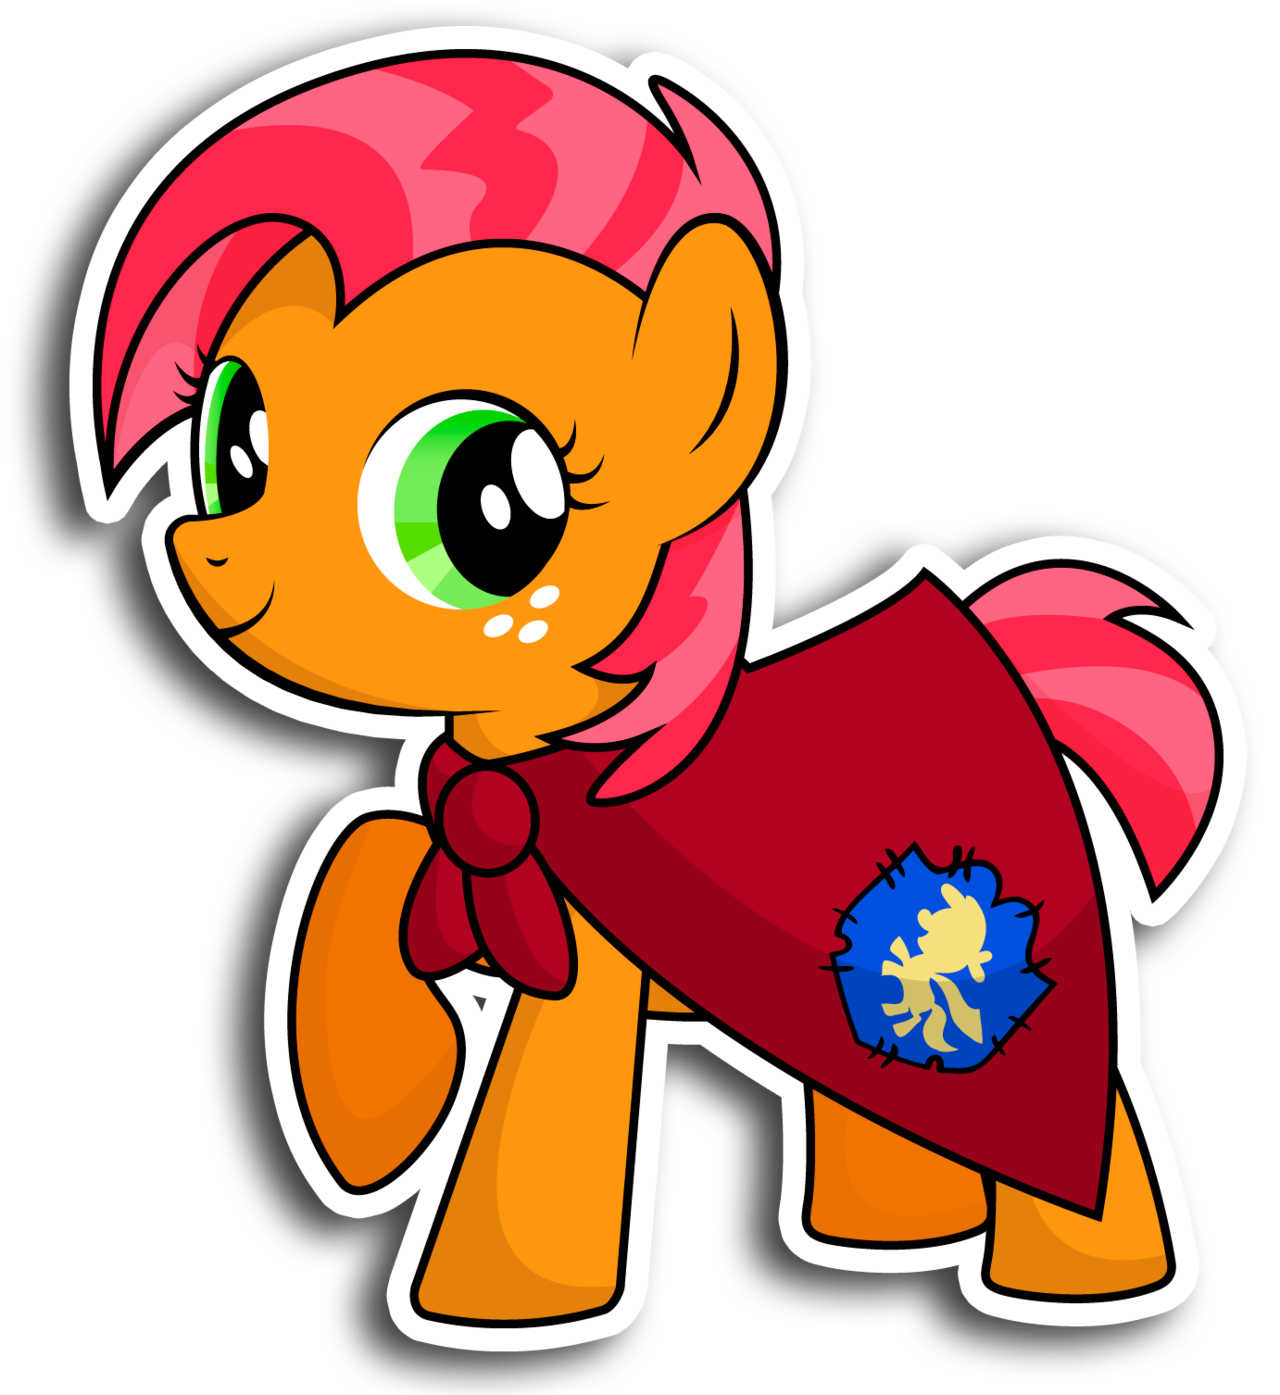 Cartoon sticker png. Babs seed by kennyklent